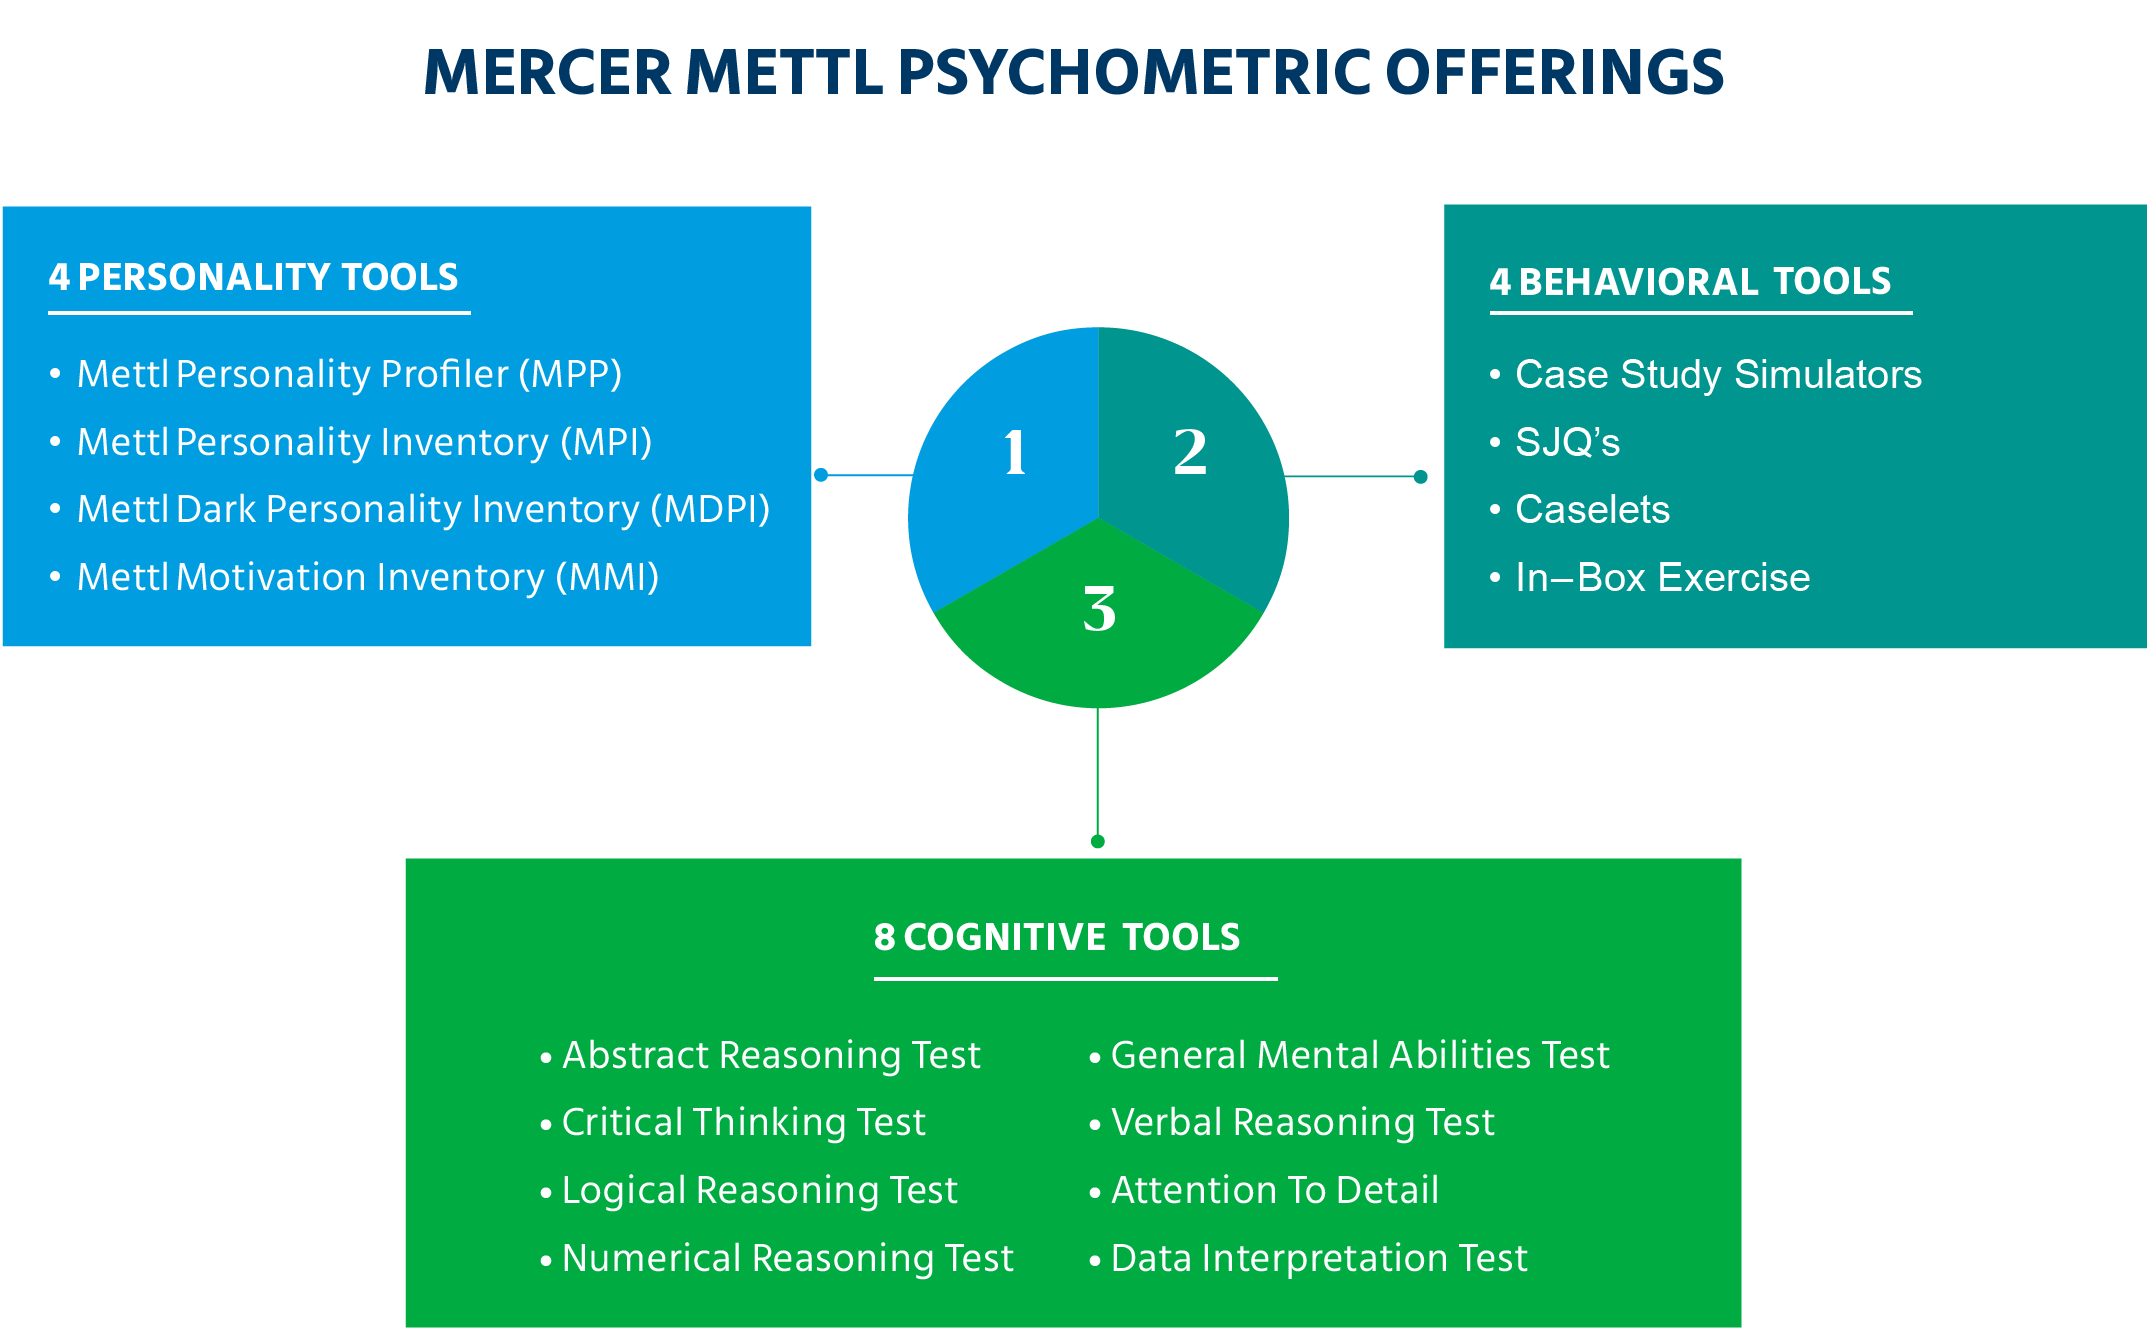 Mercer_Mettl_Psychometric_Offerings